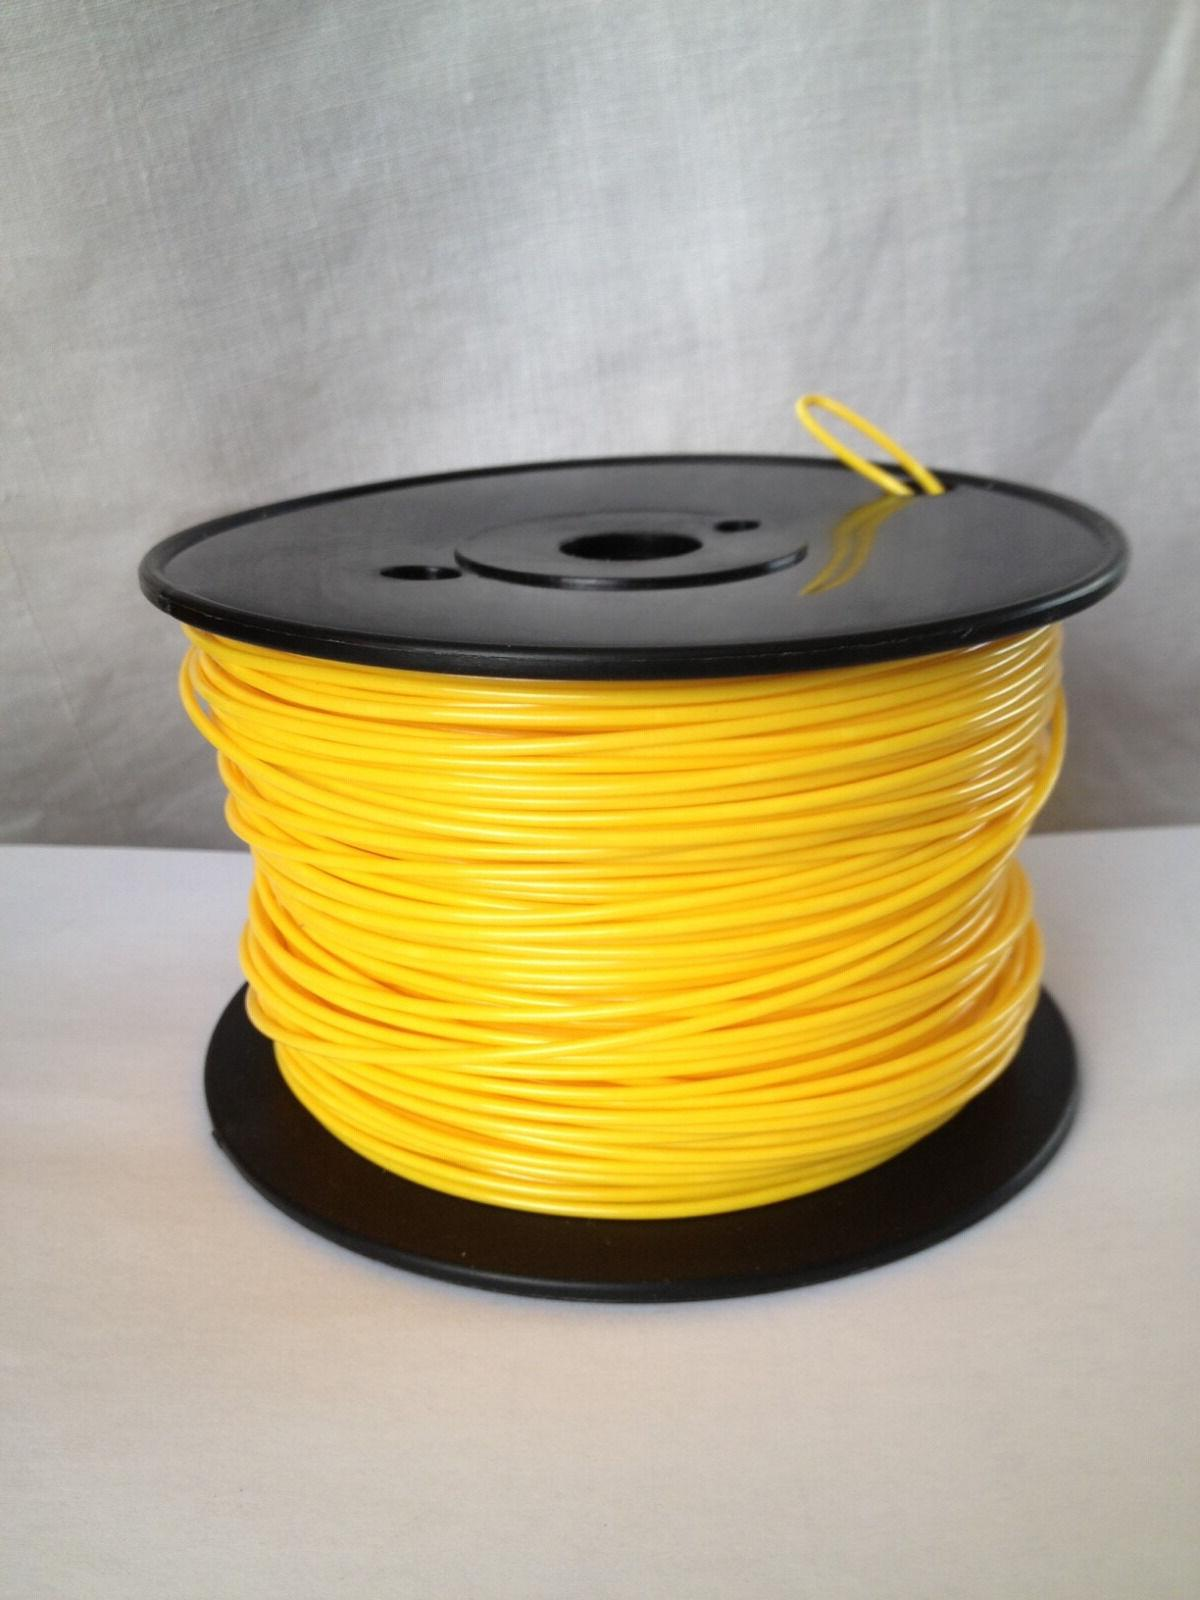 PLA/ABS 1.75 spools in